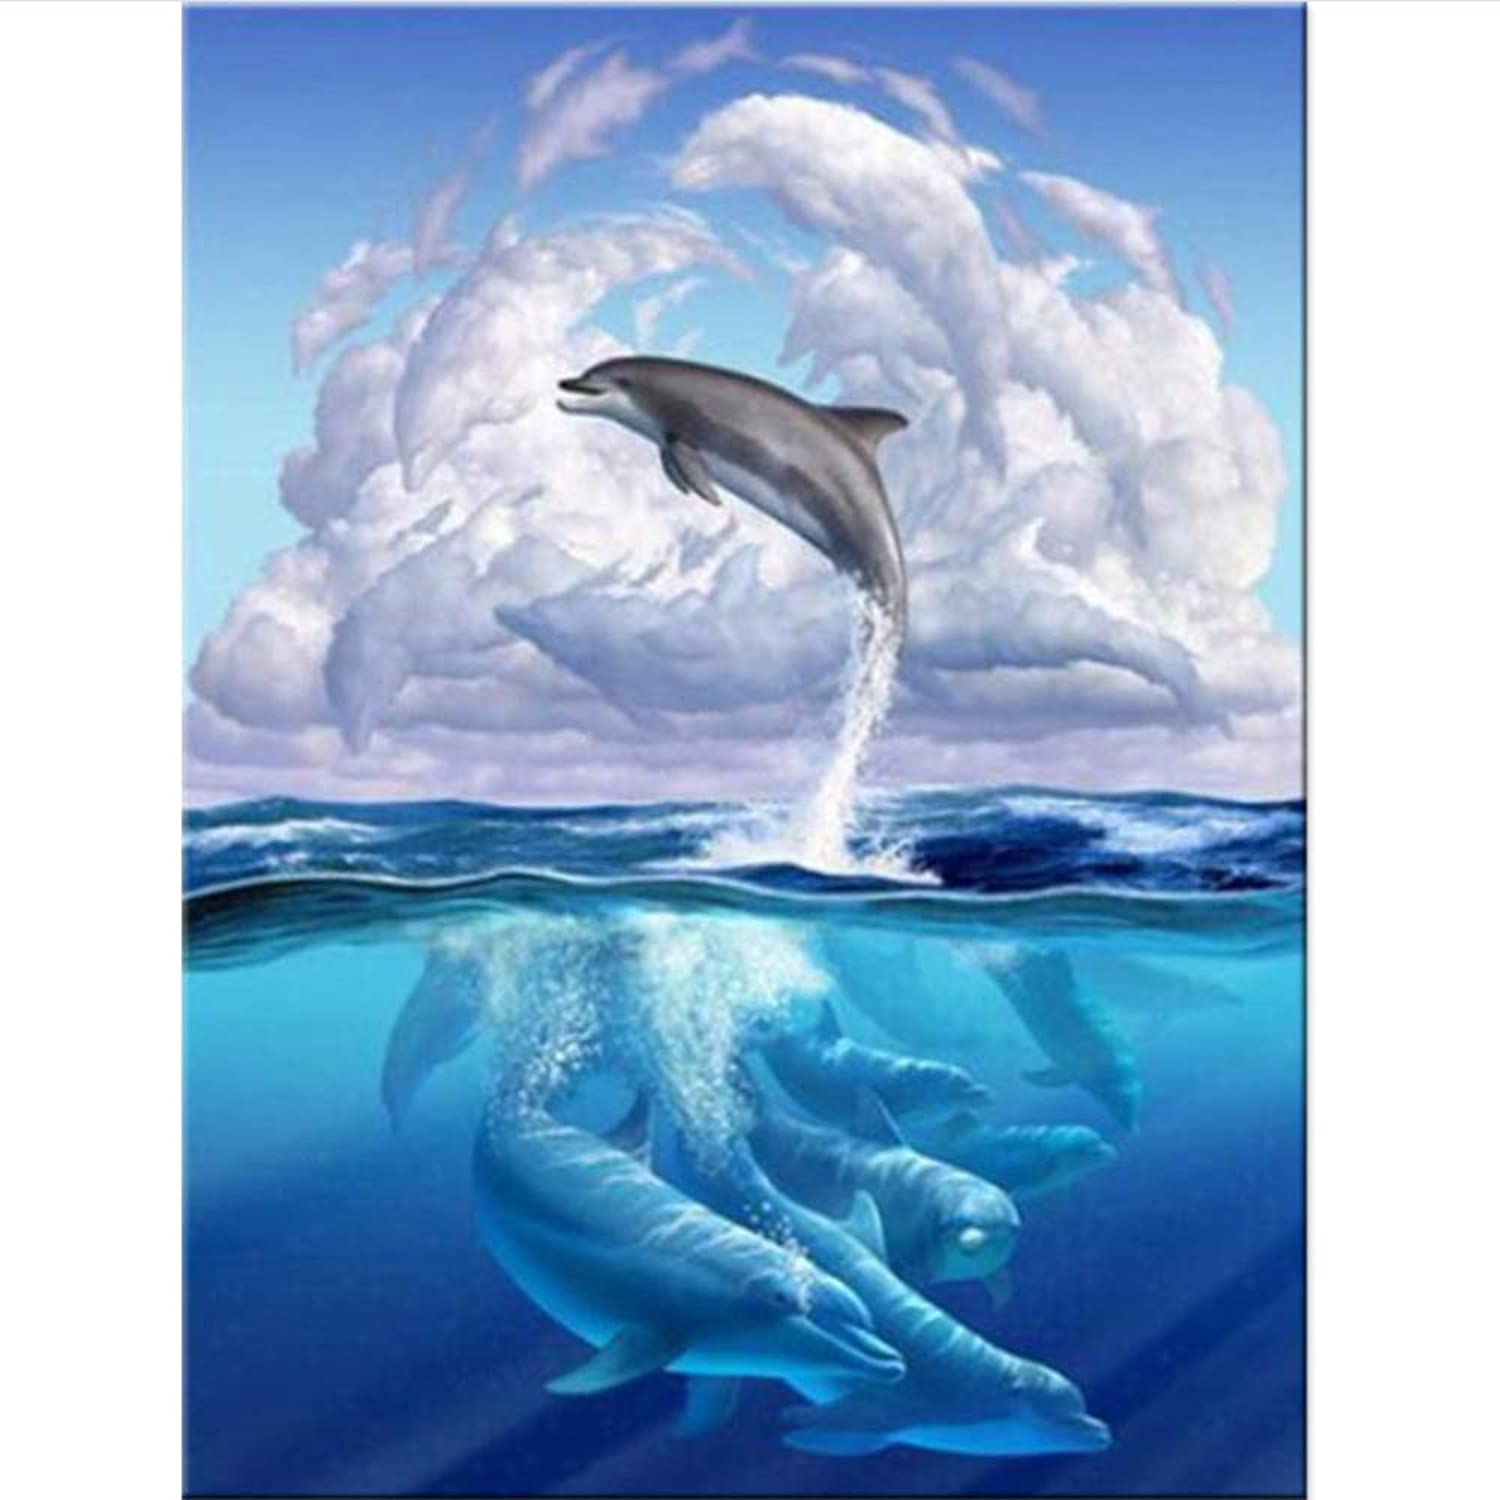 100% 5D DIY Diamond Painting Dolphins and Clouds 3D Paintings Round Rhinestones Diamant Painting Animals Embroidery,45x60cm